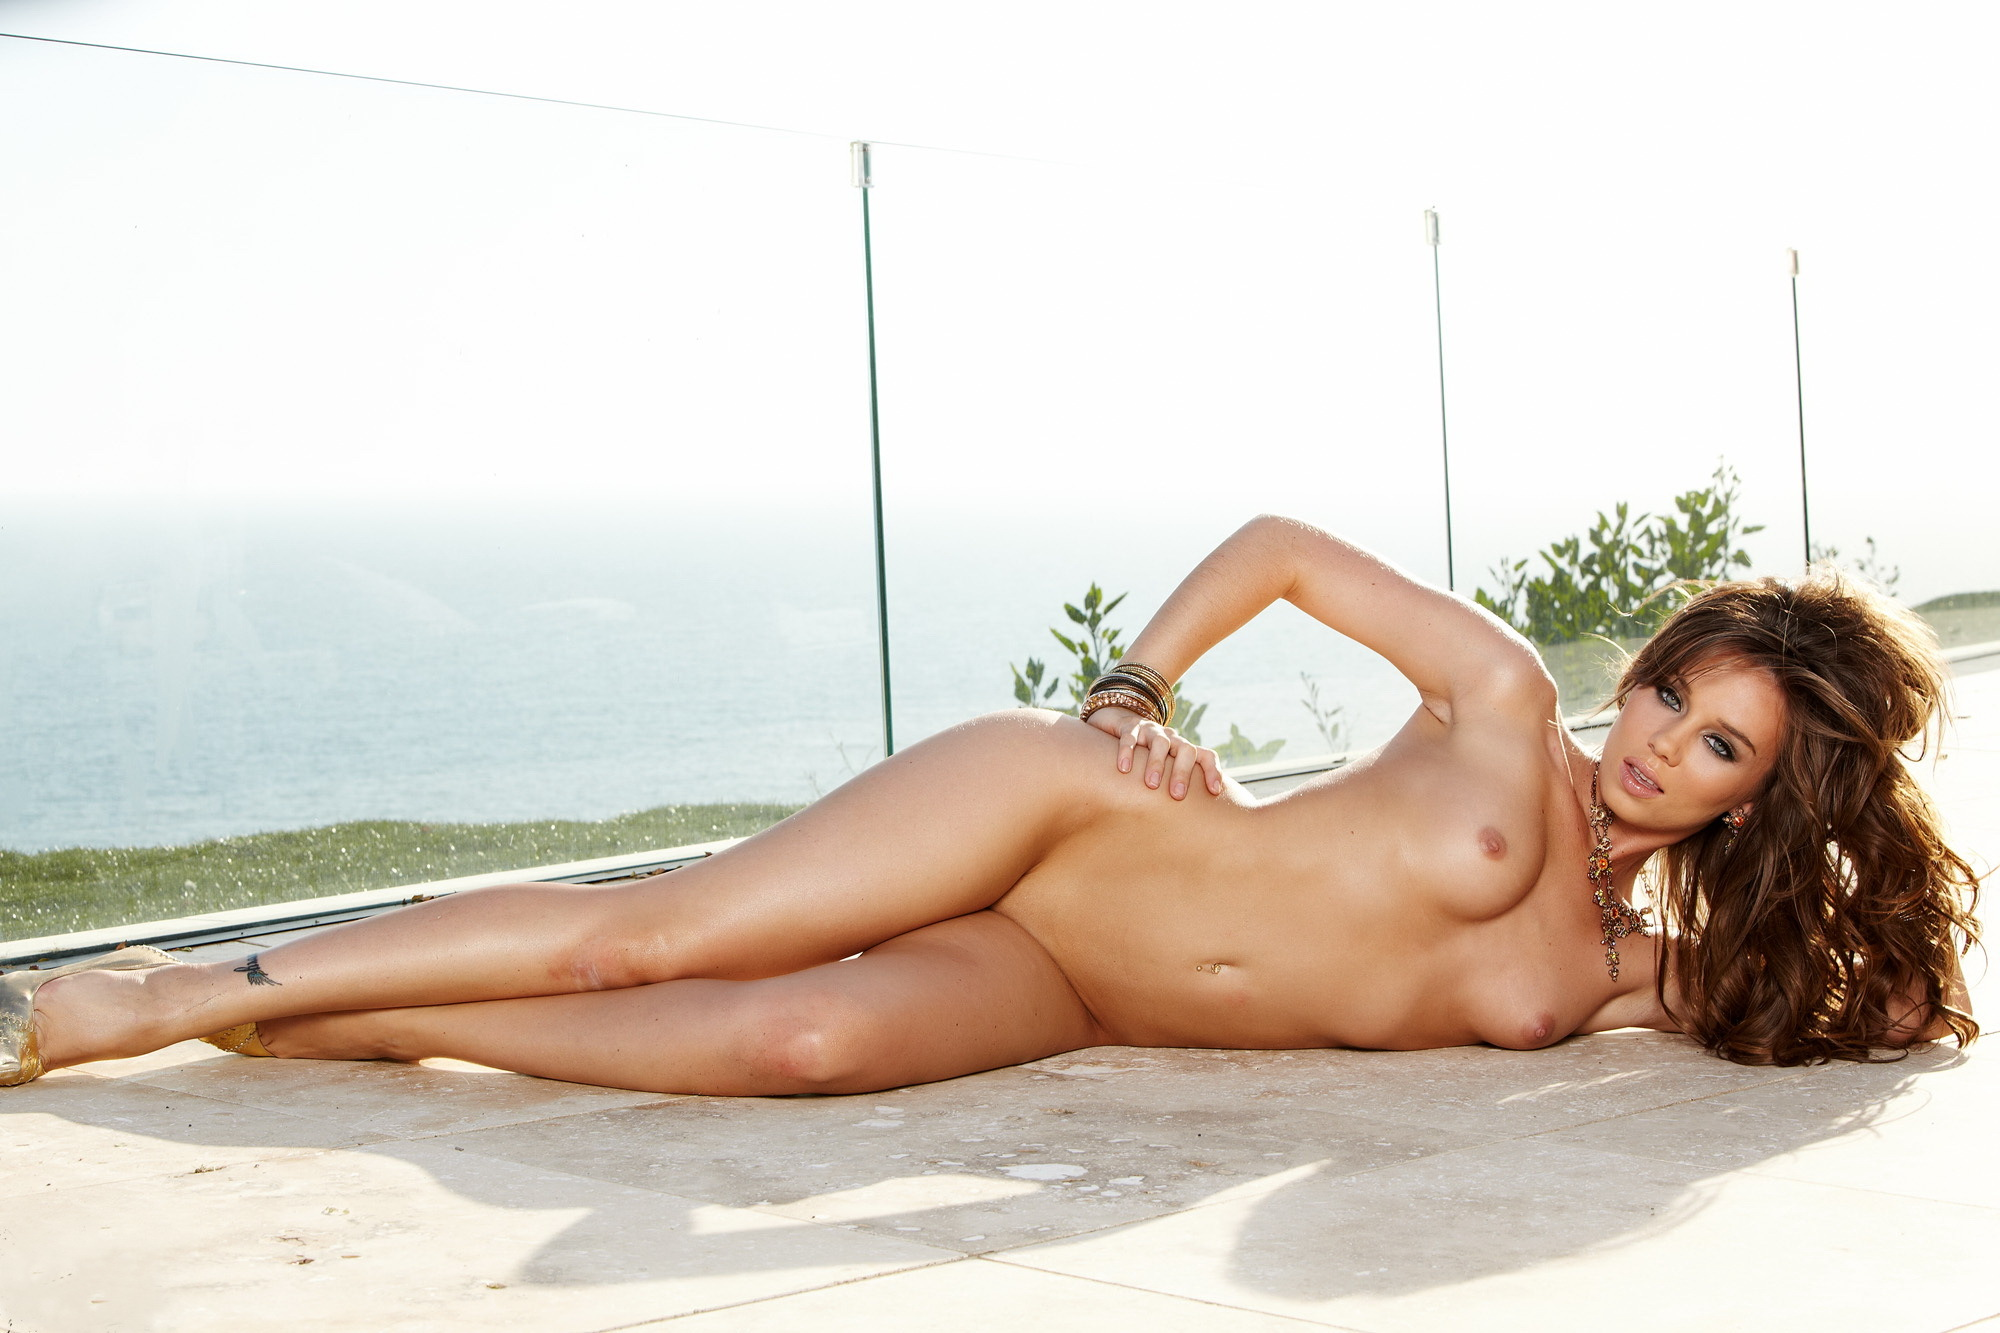 Porn wallpapers morgue naked naughty nurse nurse max came in yourself